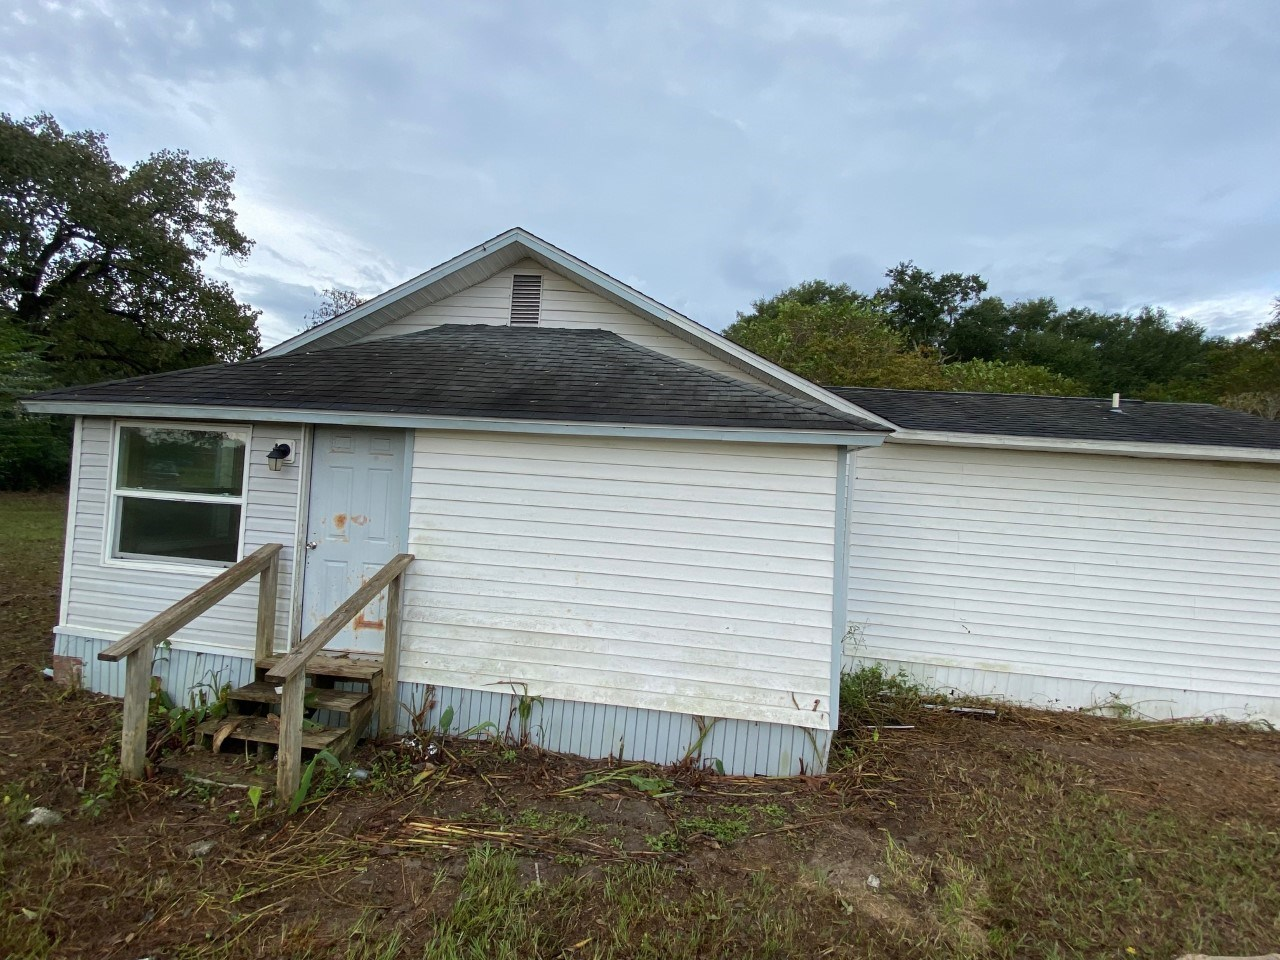 BEAUTIFUL VINTAGE HOME ON 5 ACRES FOR ONLY $175,000!!!!